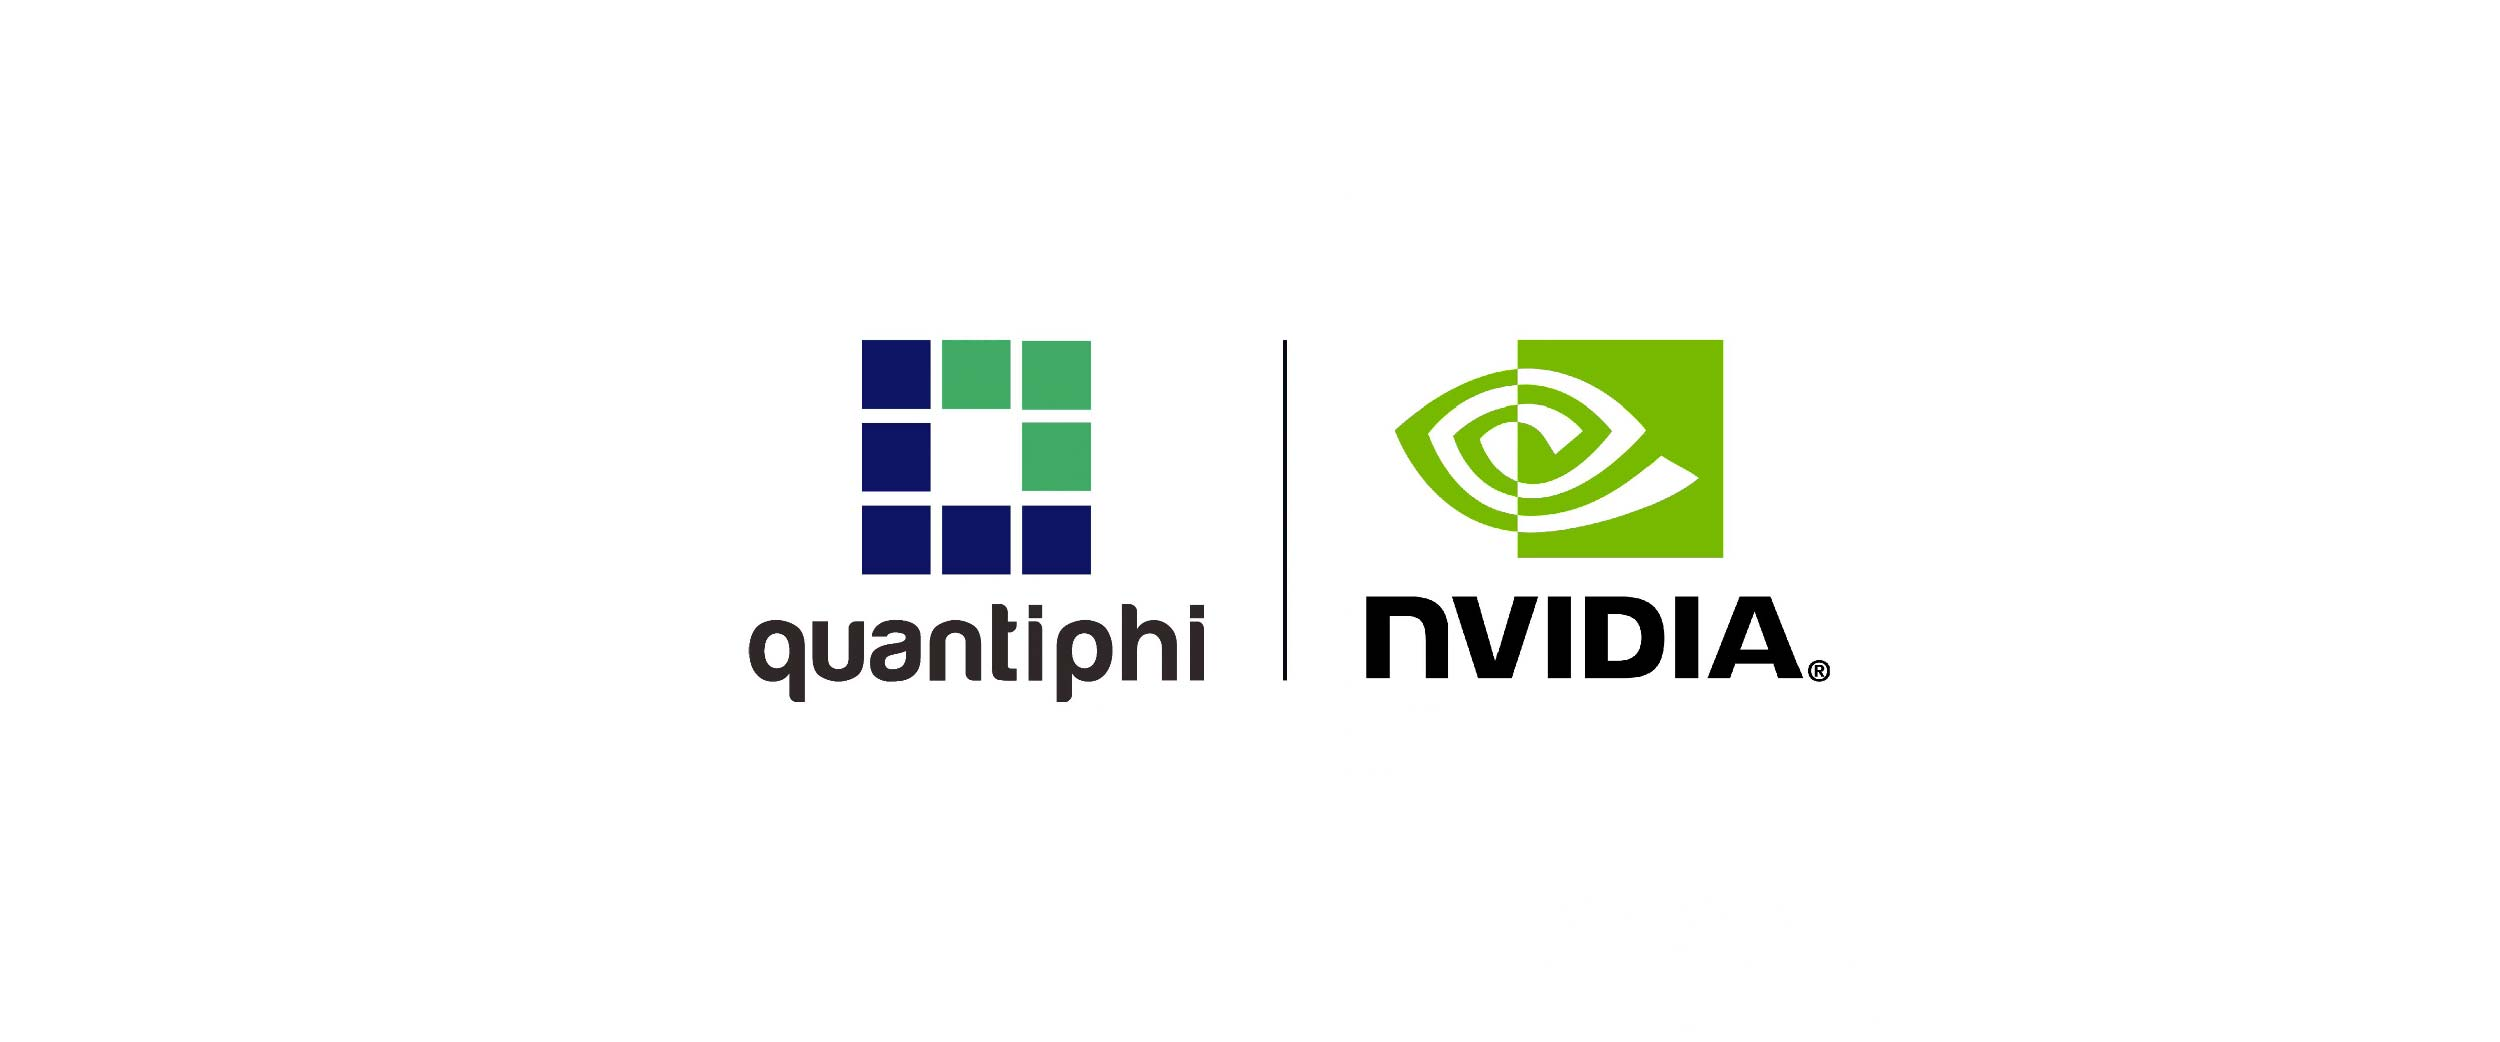 Quantiphi joins the NVIDIA Partner Network to optimize high-performance AI solutions